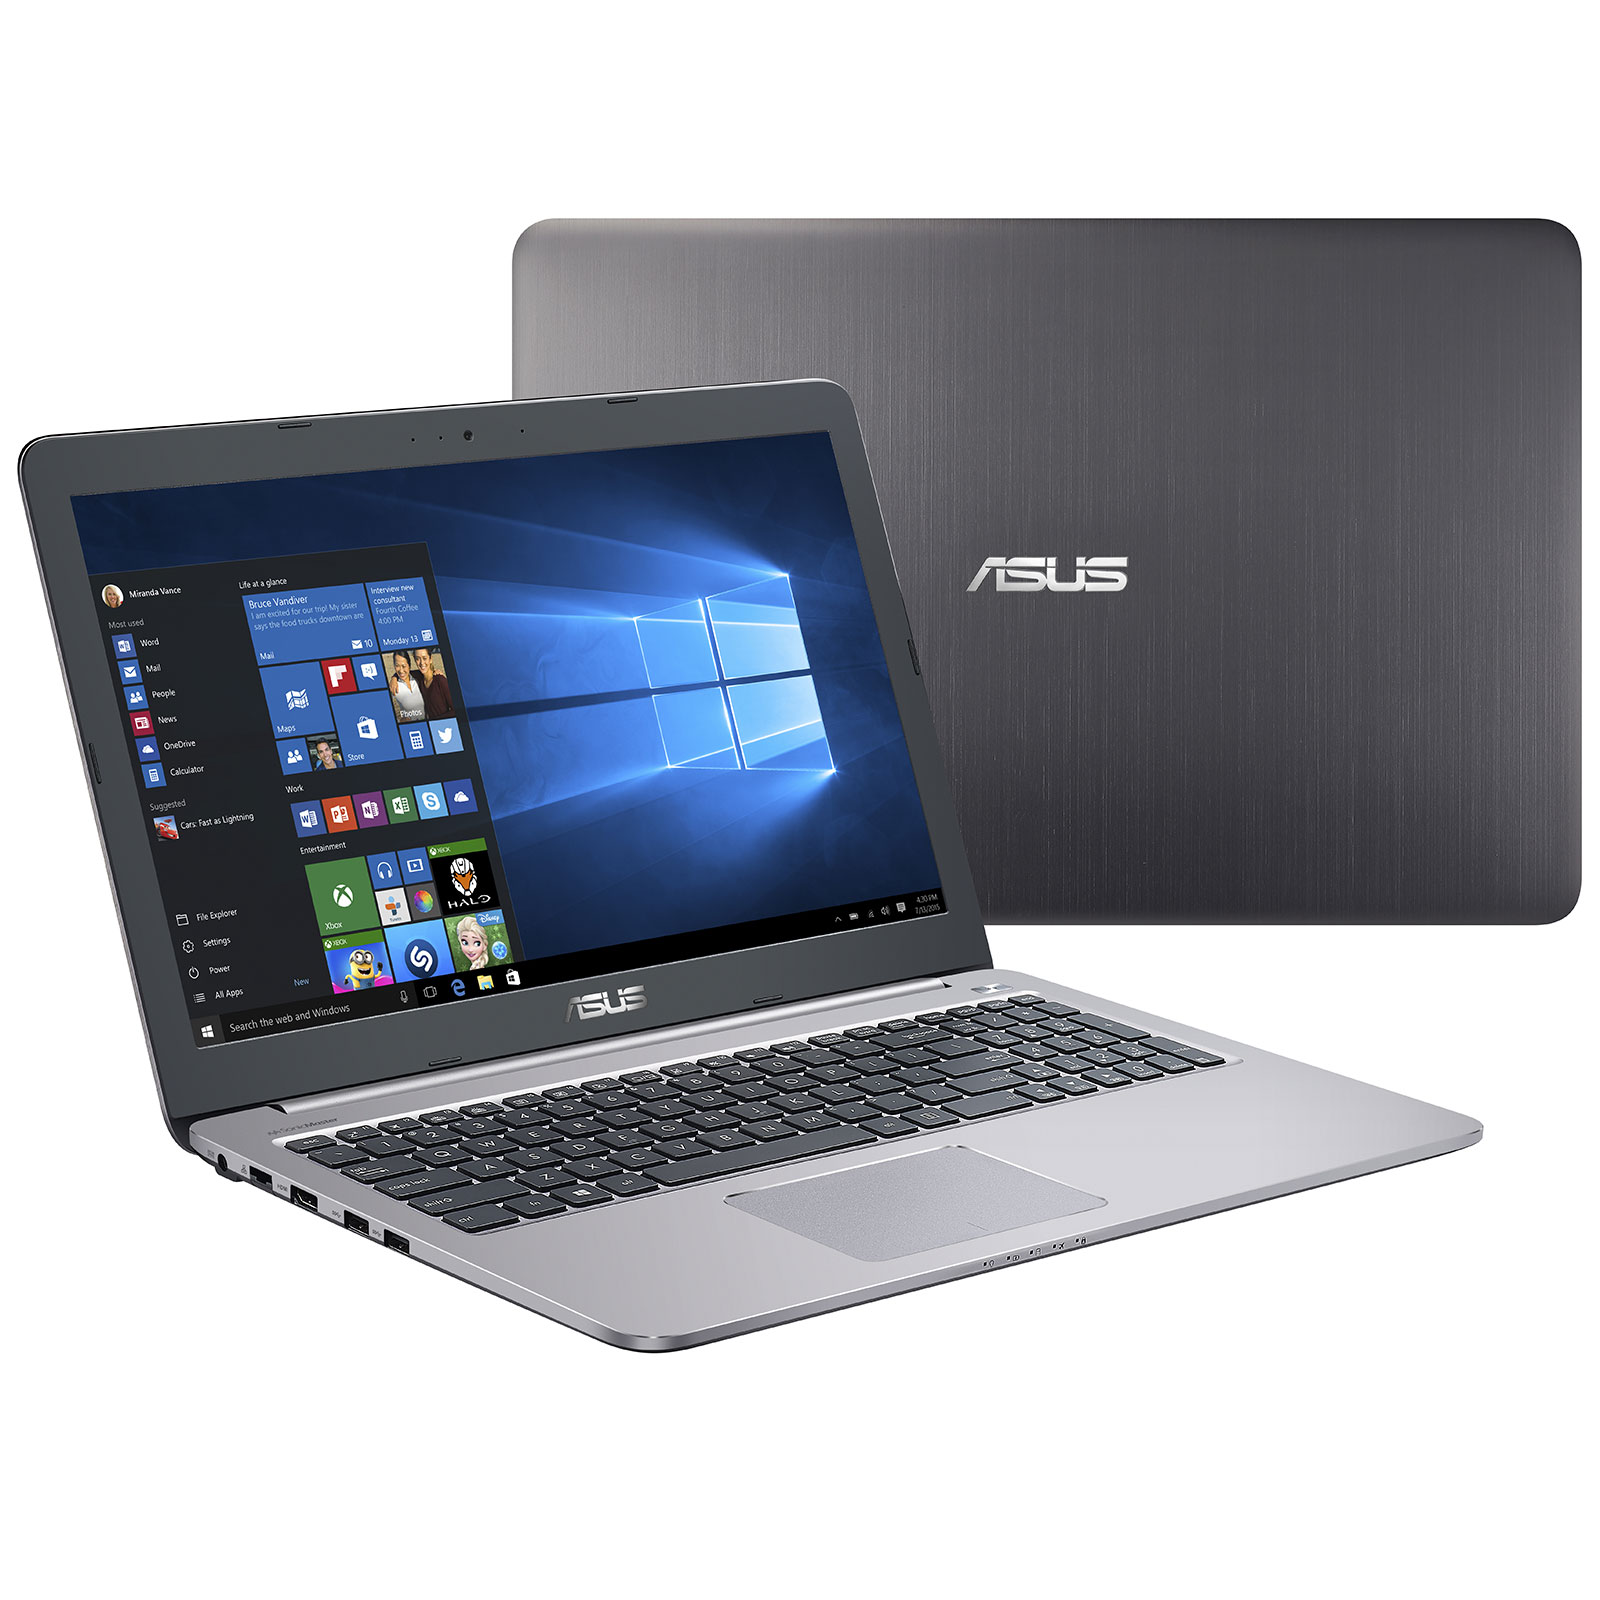 asus k501uw dm013t pc portable asus sur. Black Bedroom Furniture Sets. Home Design Ideas